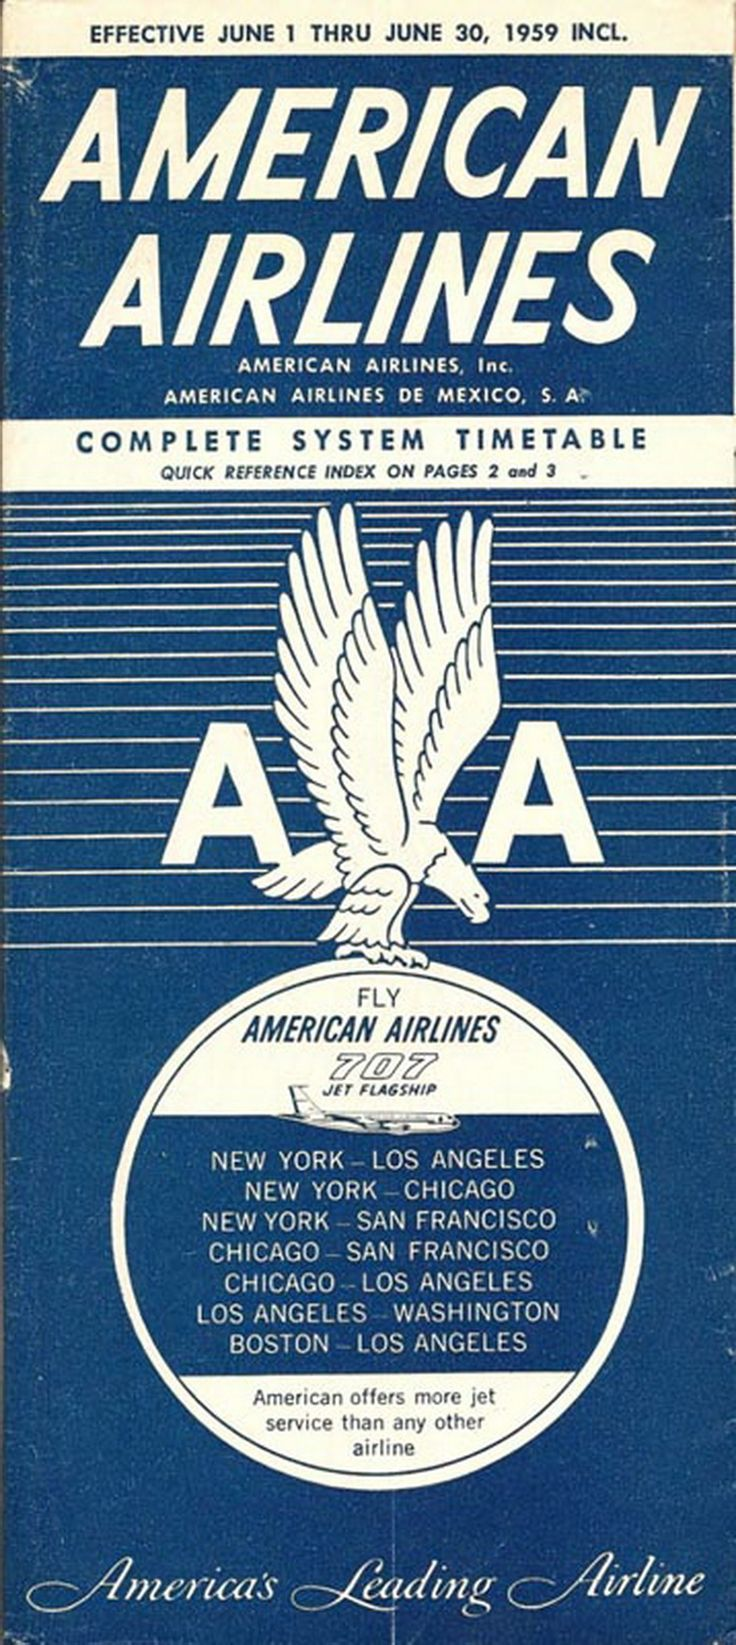 American Airlines Vintage Airline Timetable From 1959